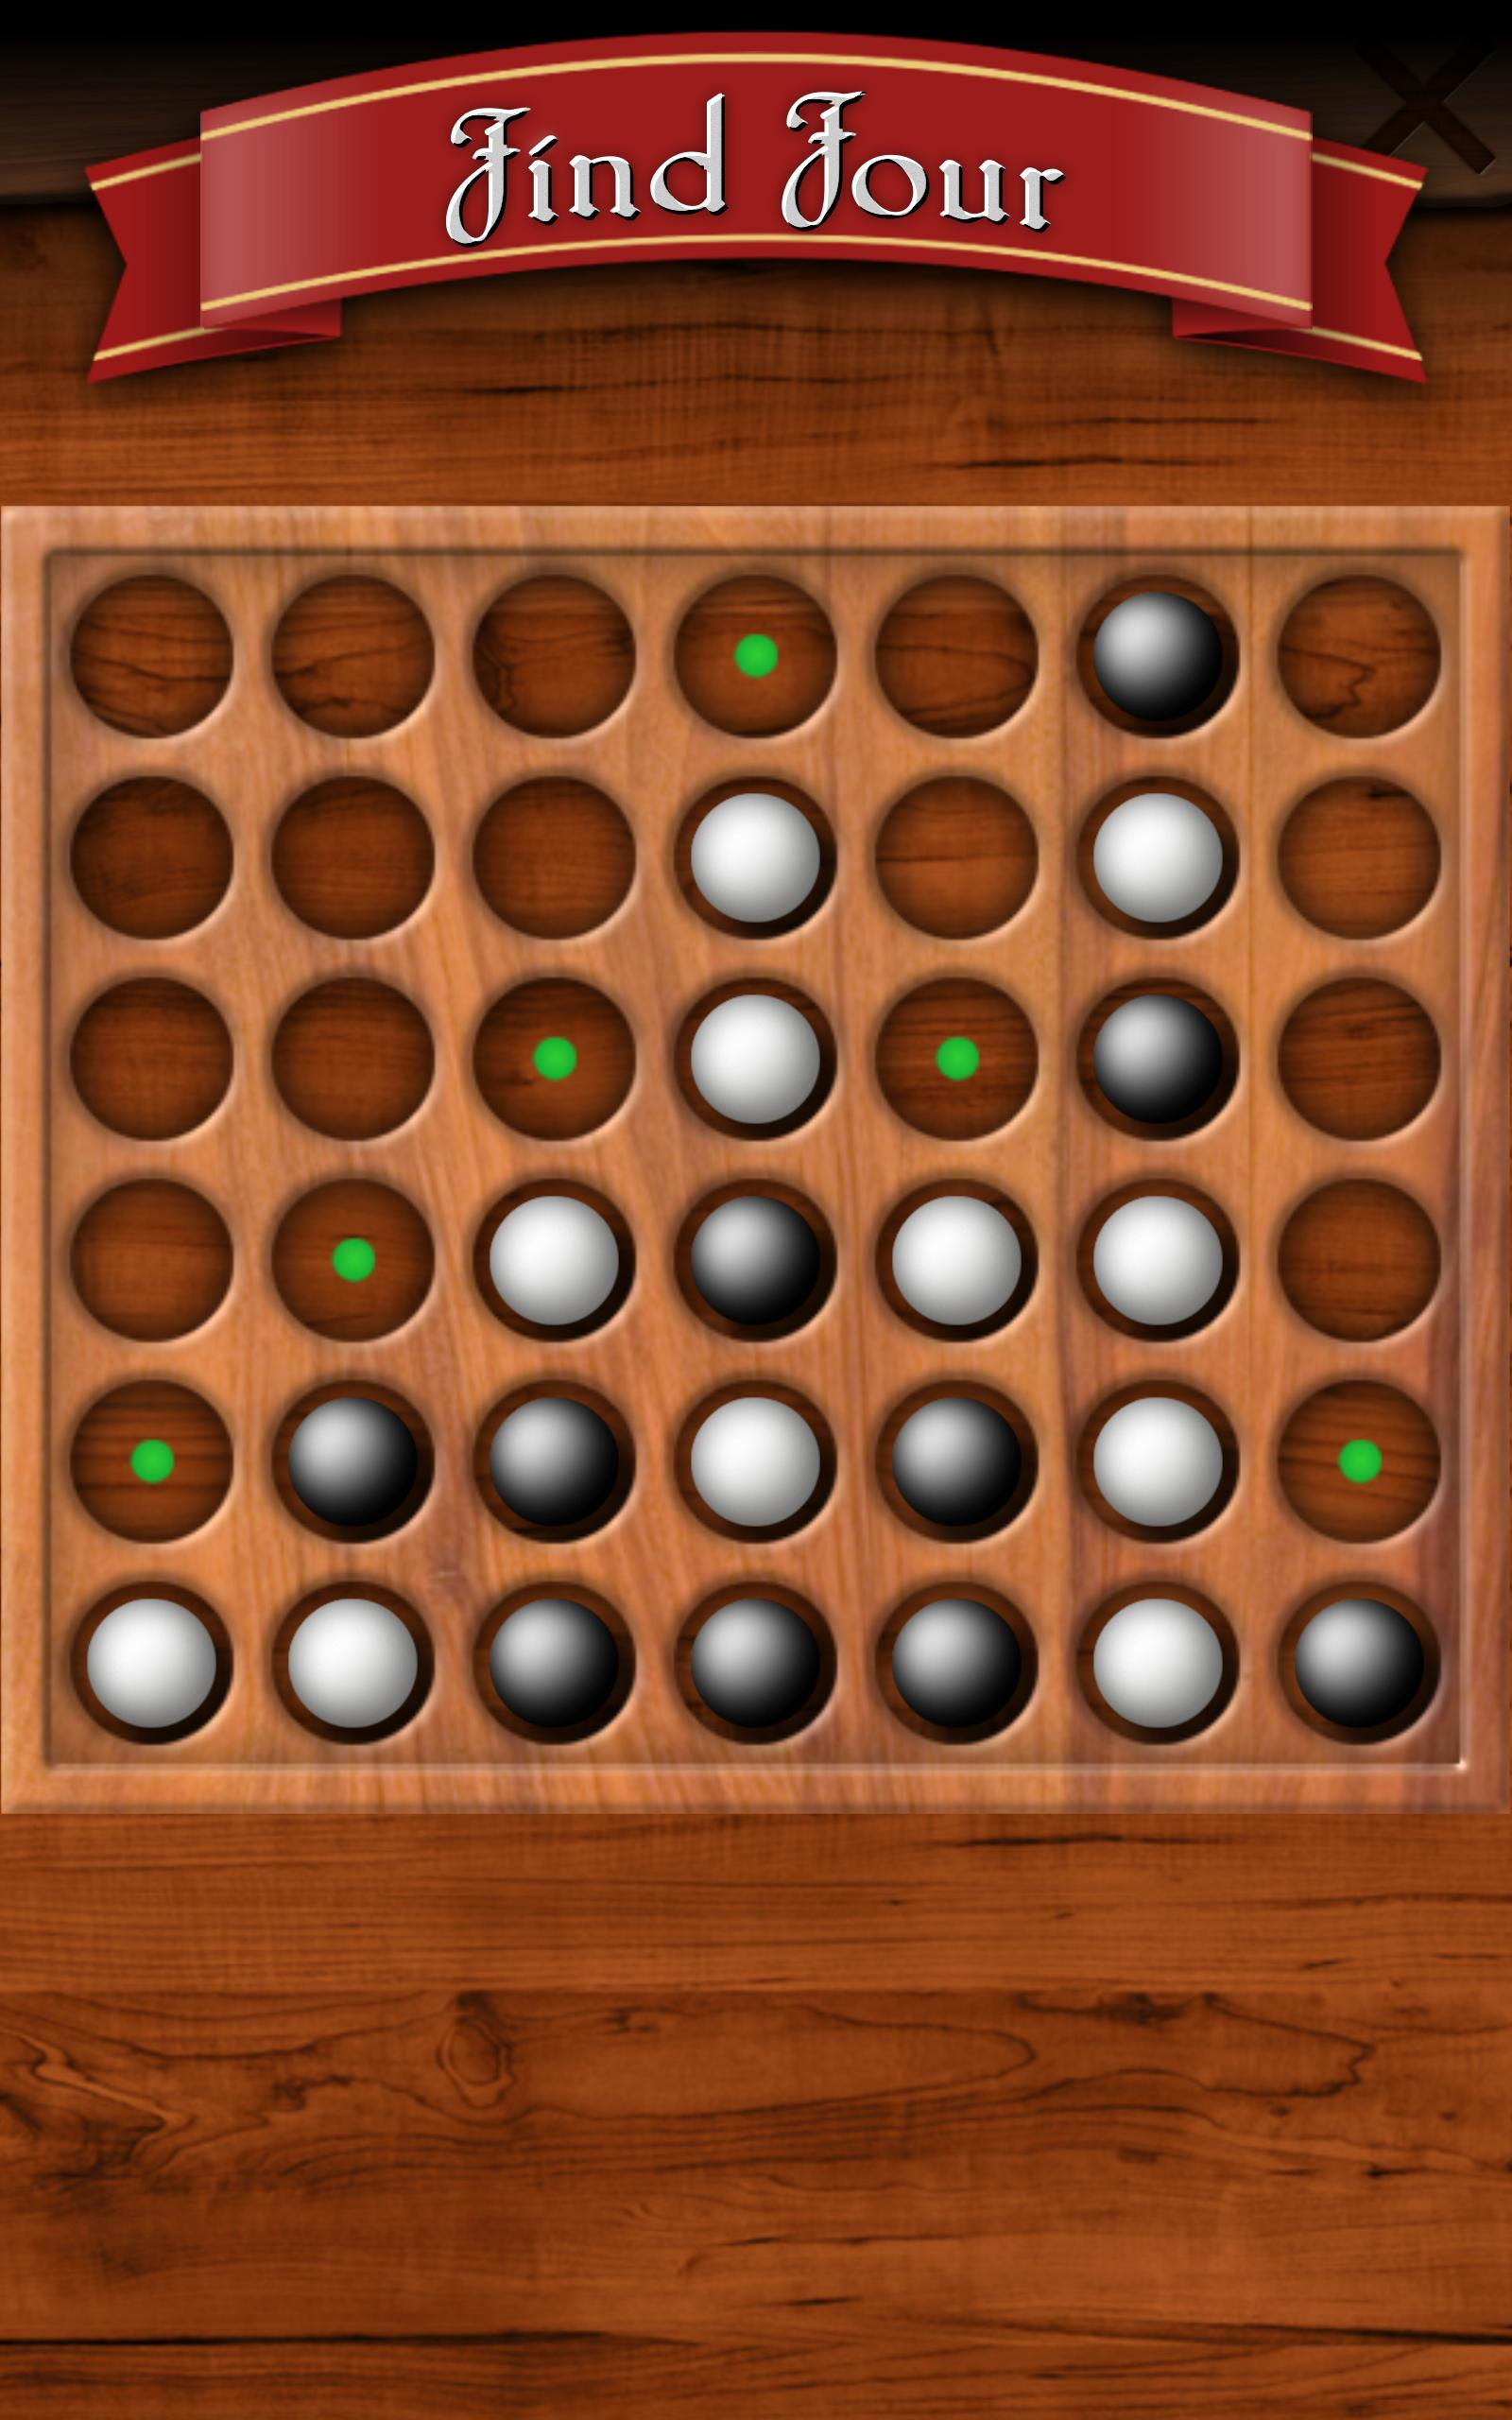 Free Classic 4 - The famous board games 2.1.6 Screenshot 4